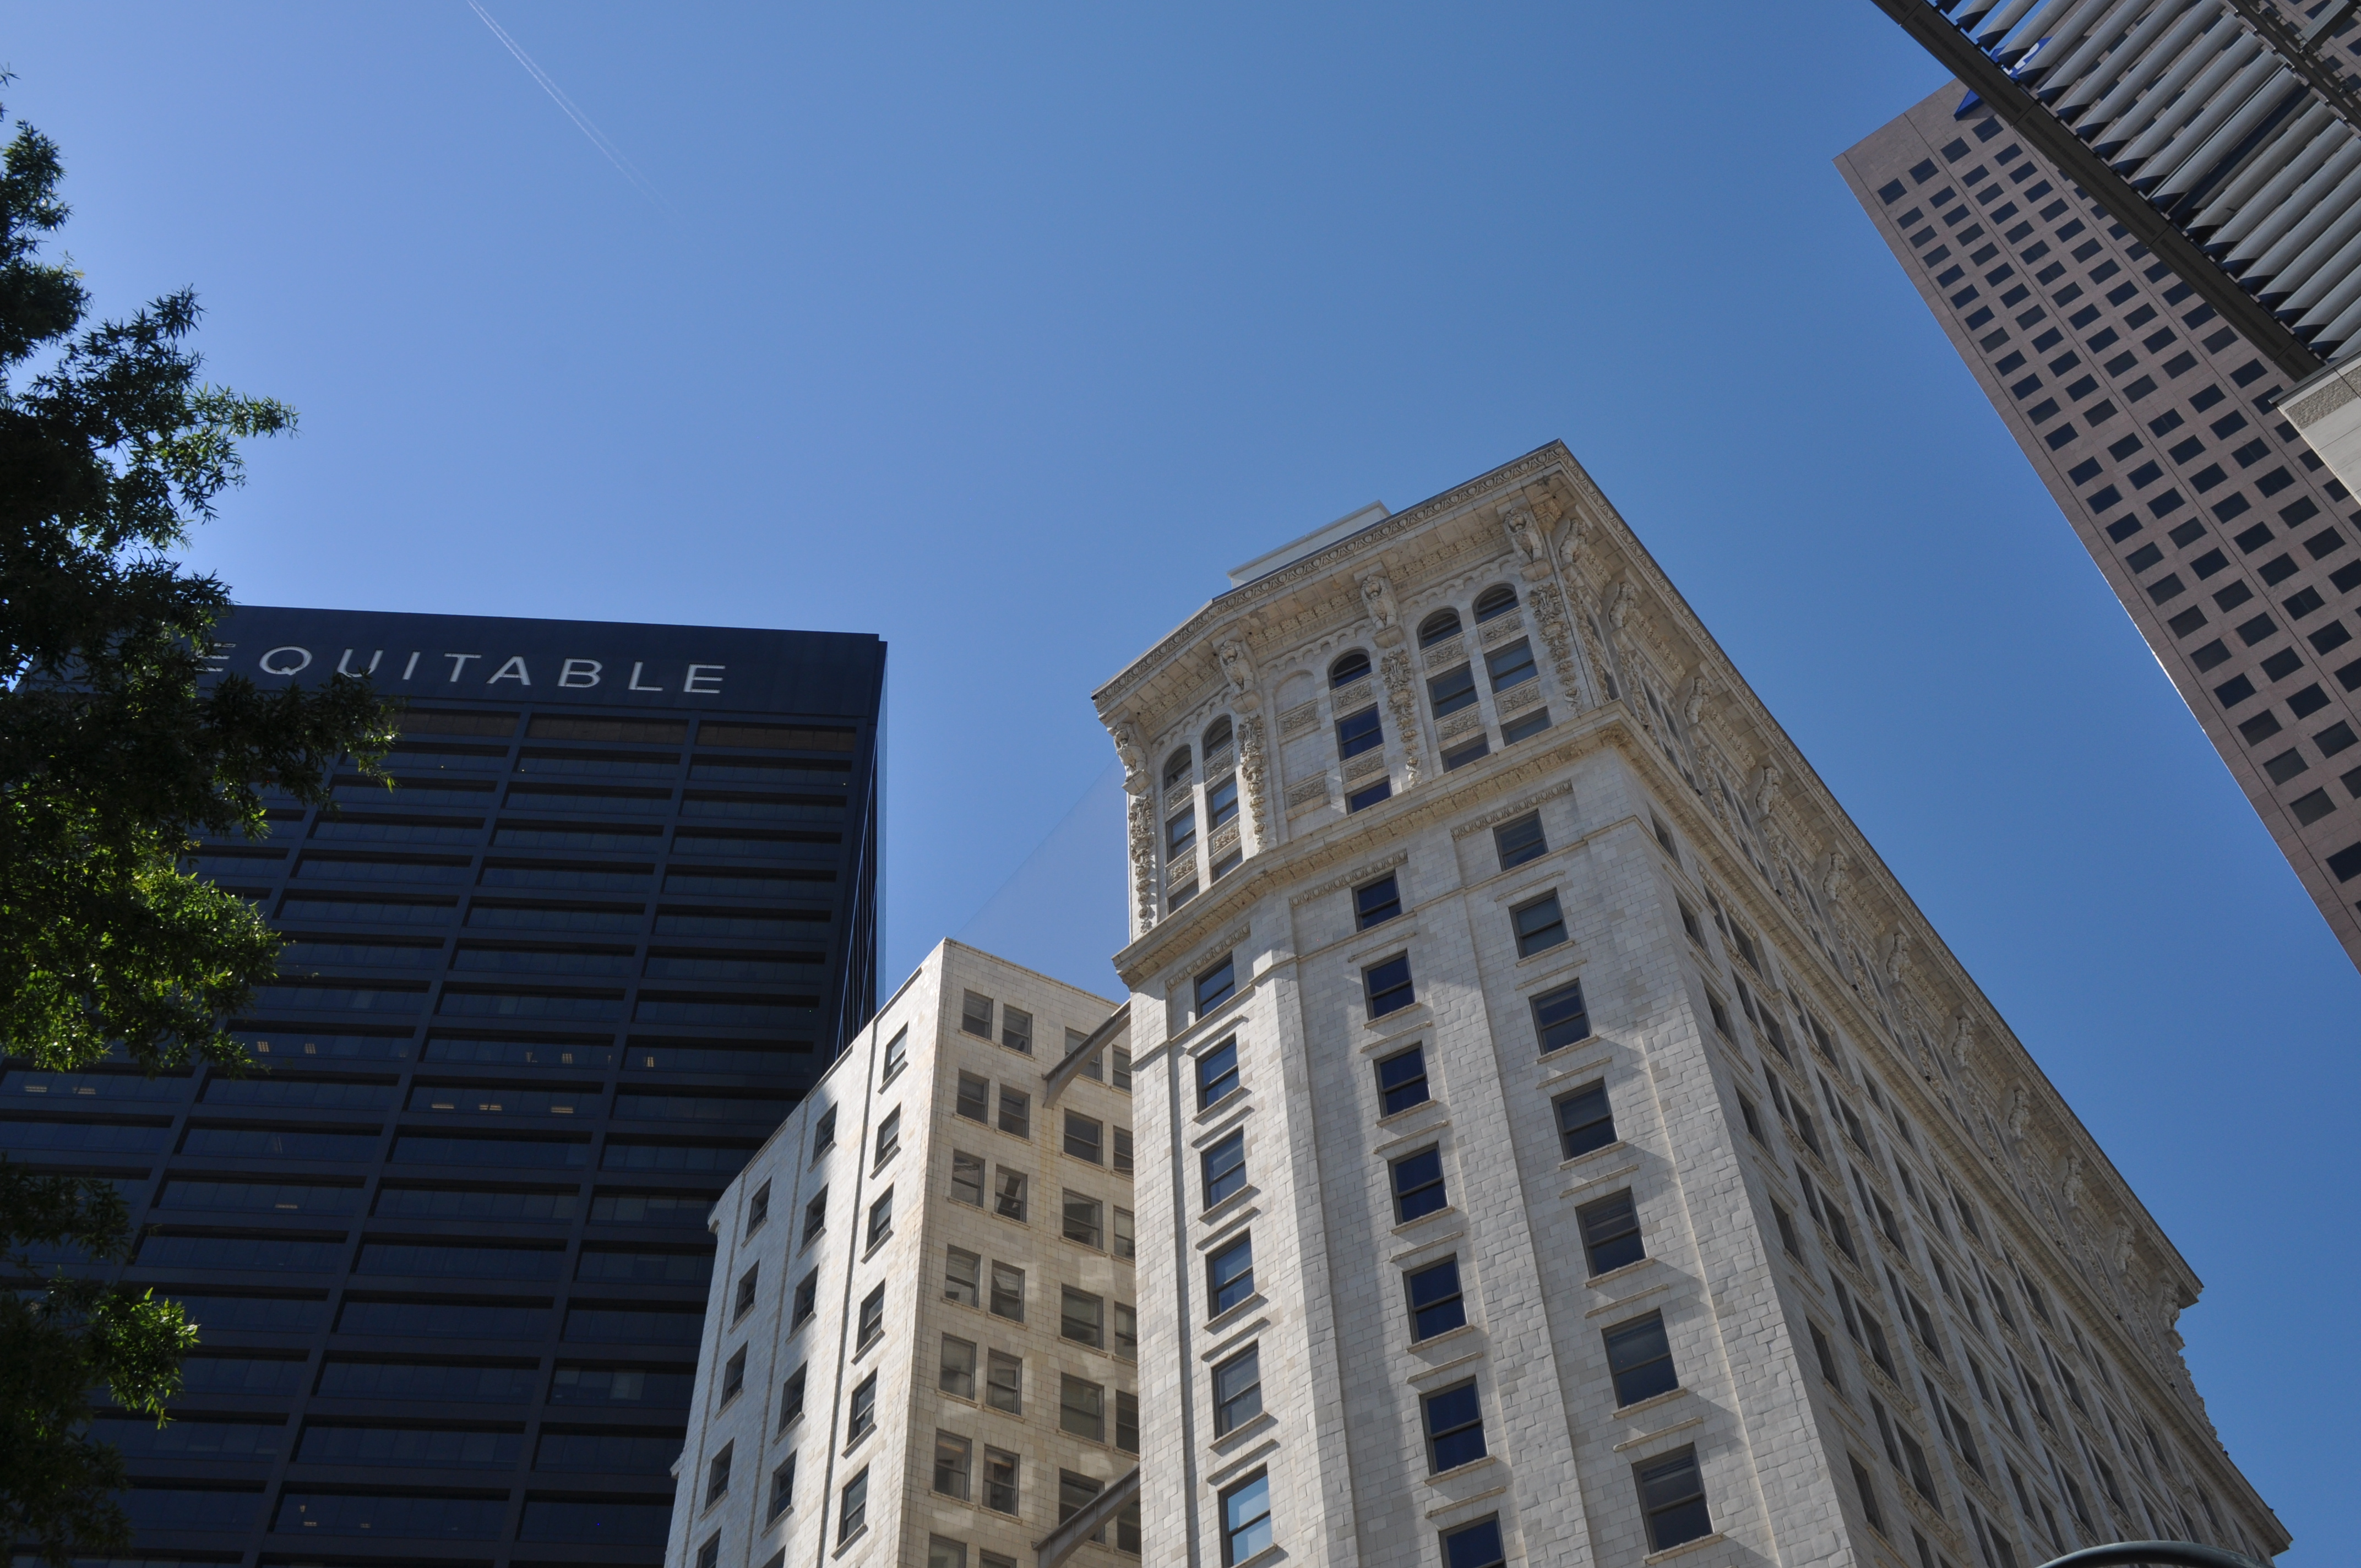 A photo of the ornate 17-story white marble building.